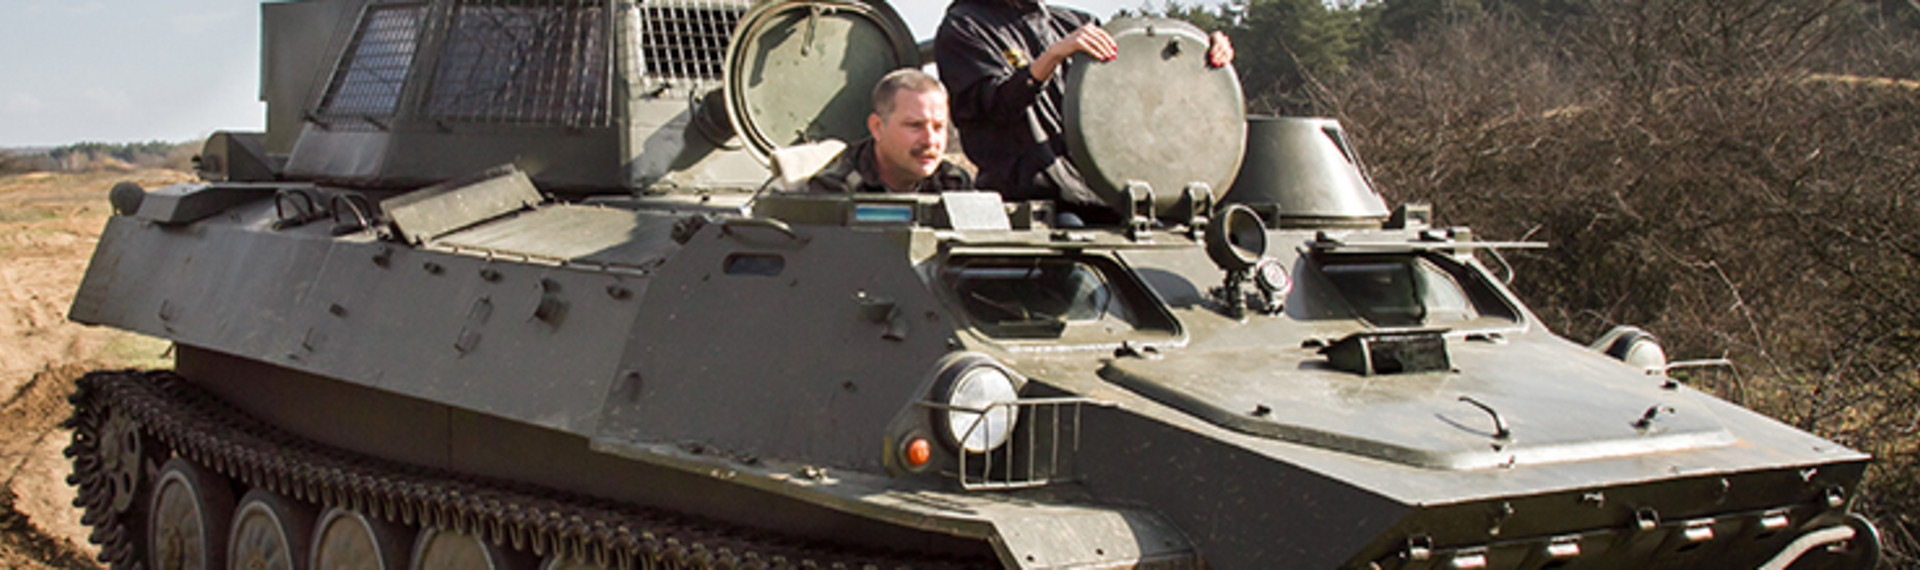 Budapest Budget Tank Riding & Driving image